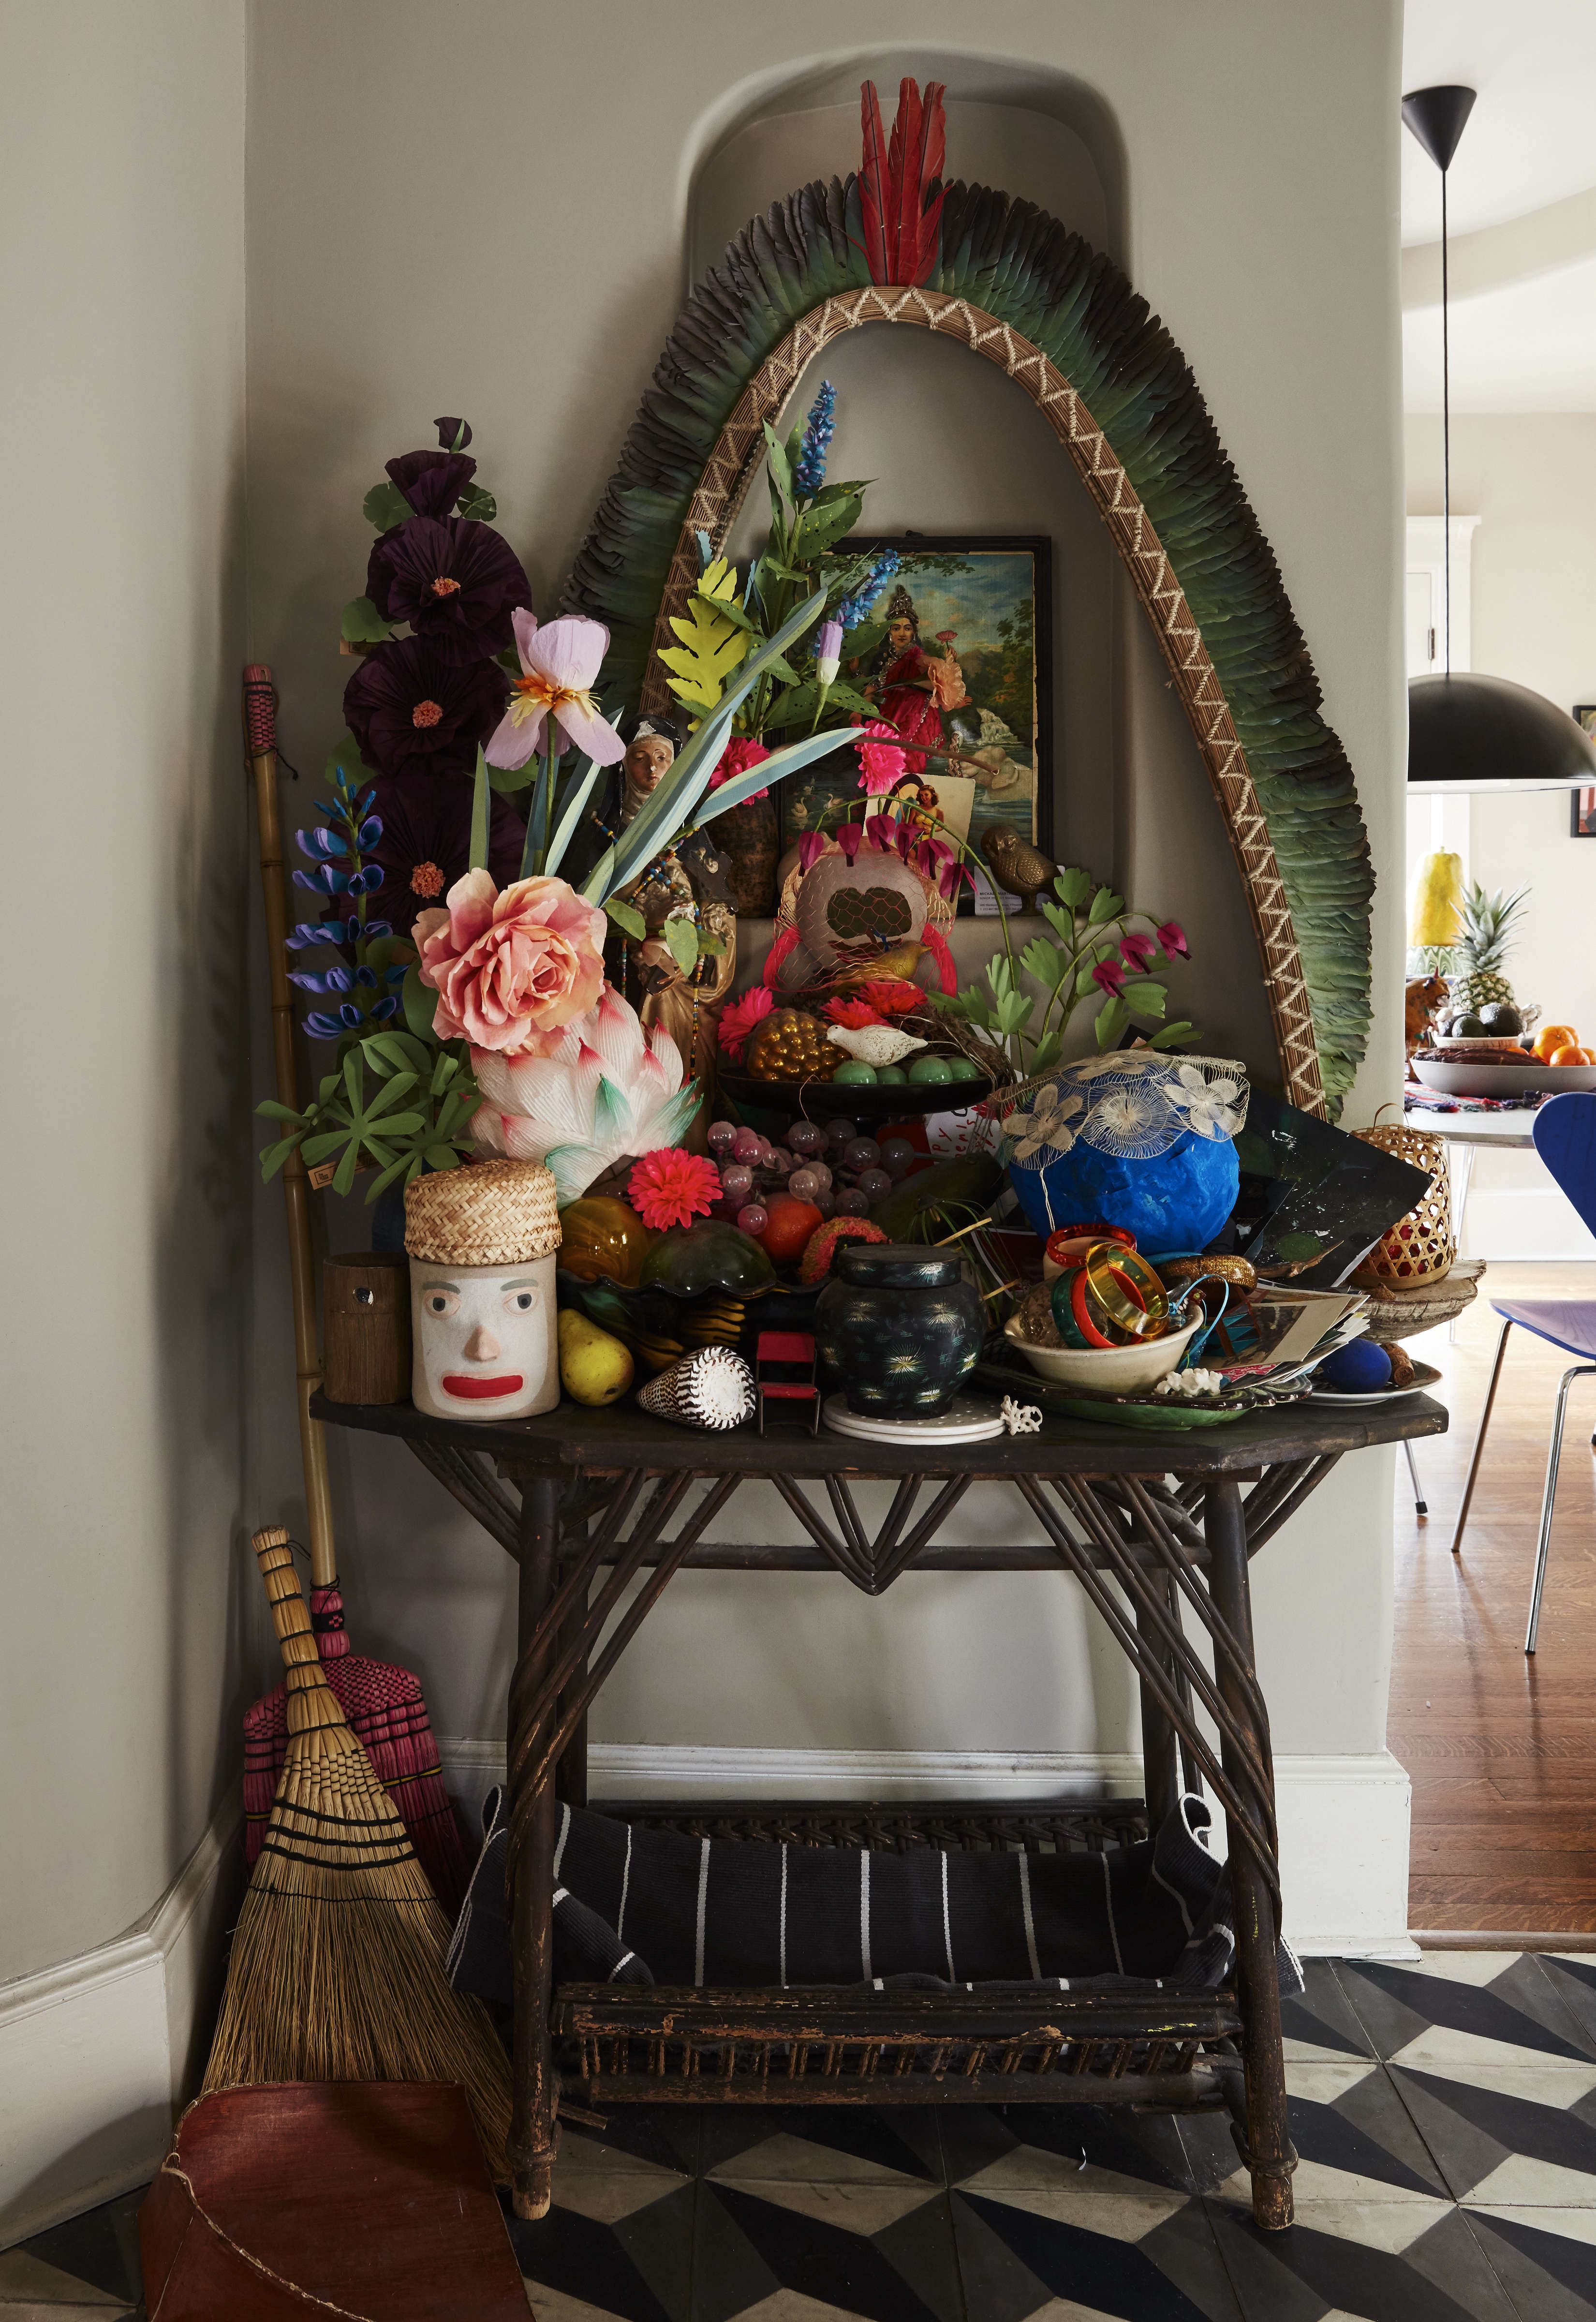 An ever-growing shrine rises in a recess that Danny built between the kitchen and living room. It&#8